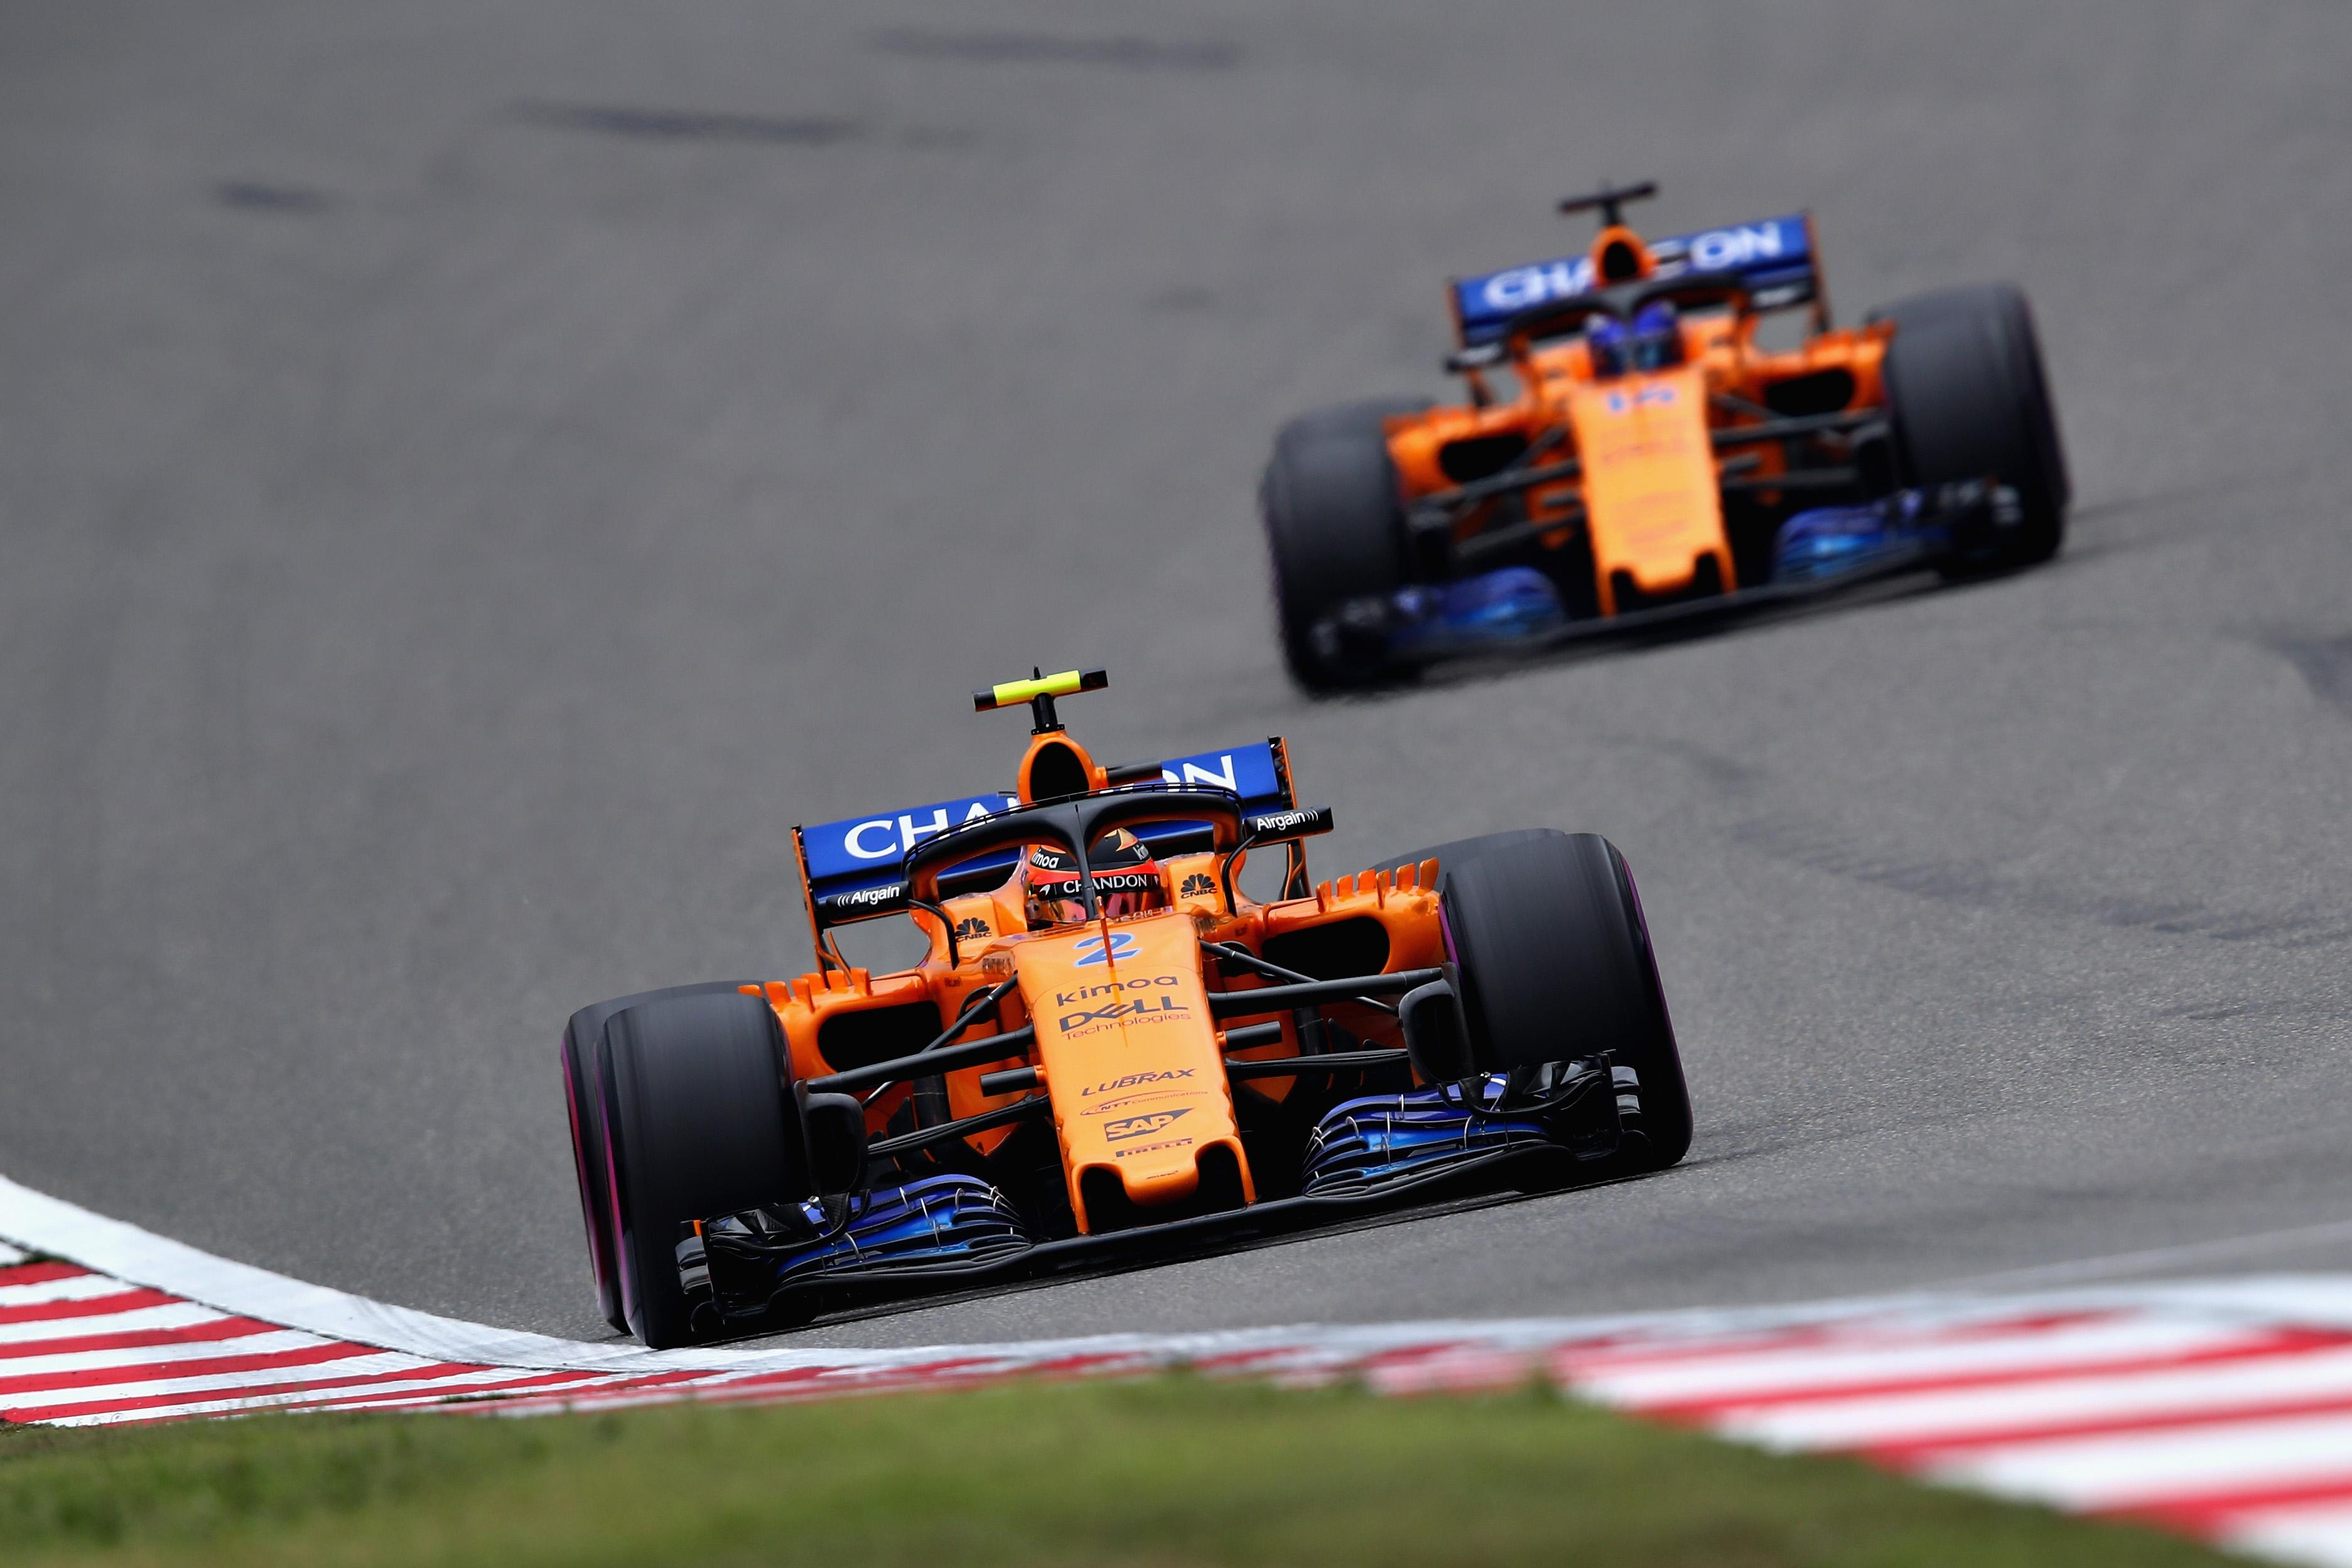 Workers at F1 team McLaren are considering strike action after their Freddo rewards